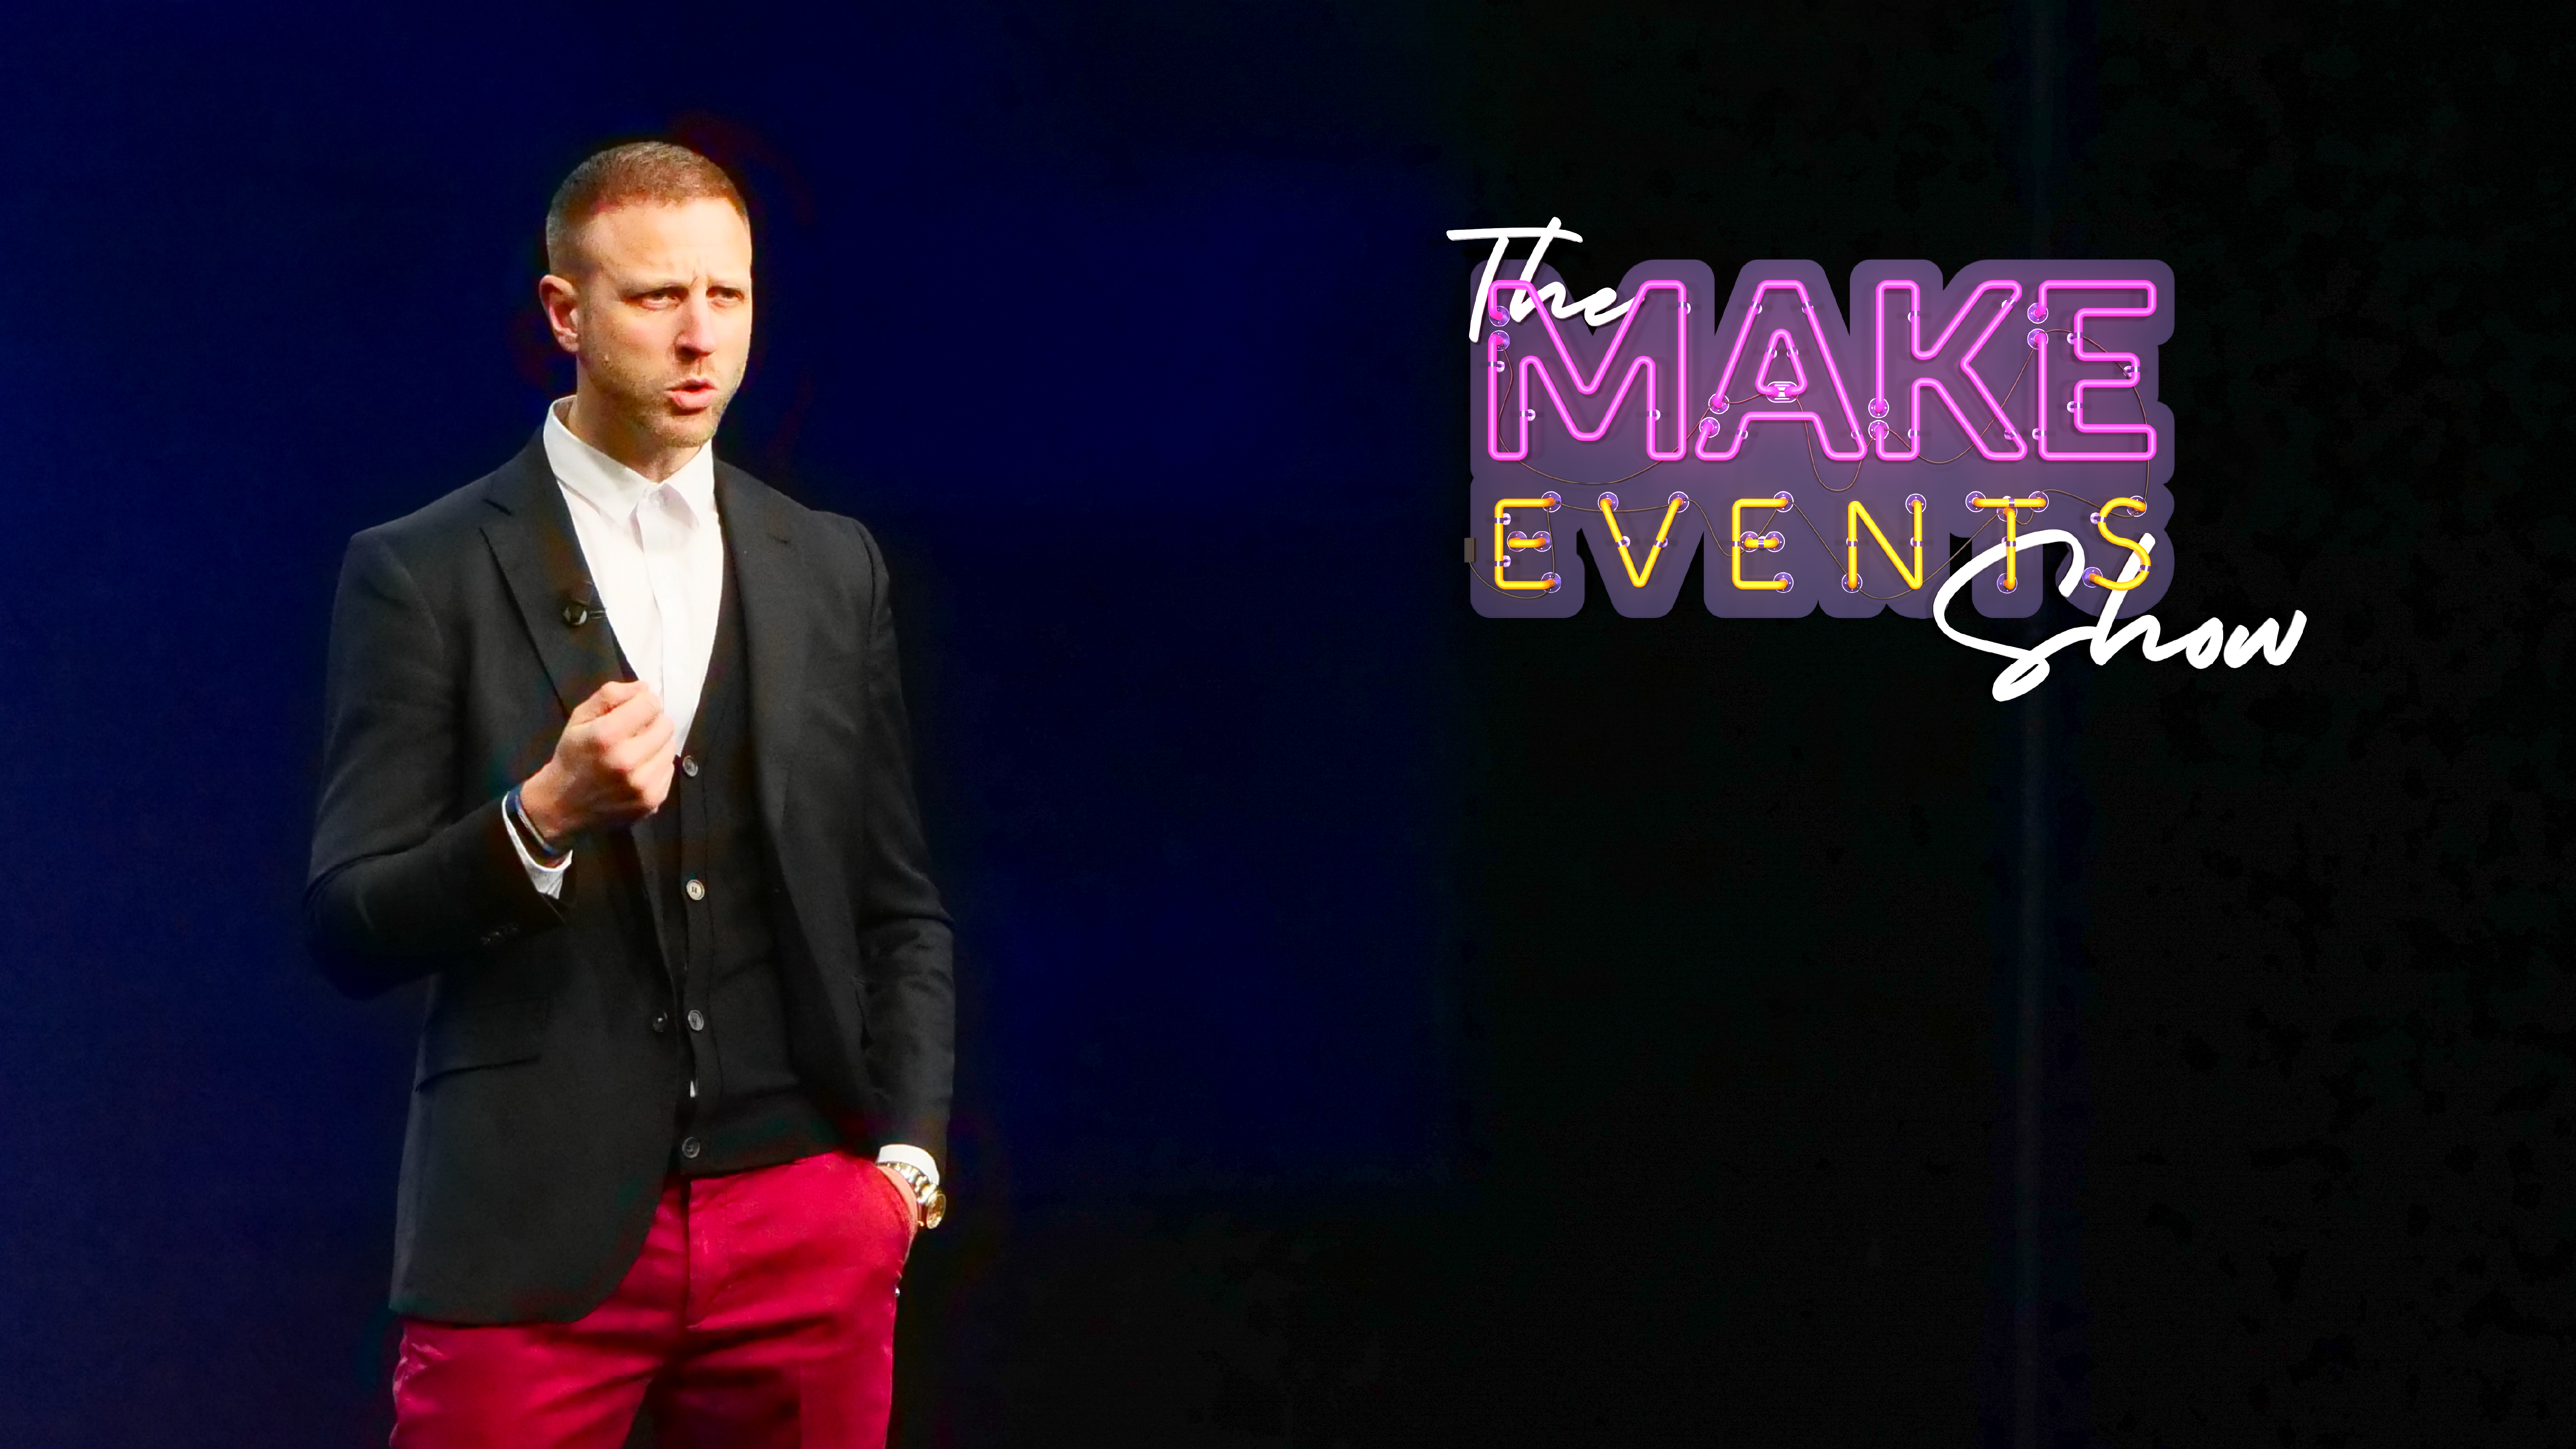 Make Events | Brand Management, Corporate and Virtual Events Company | Paul and logo